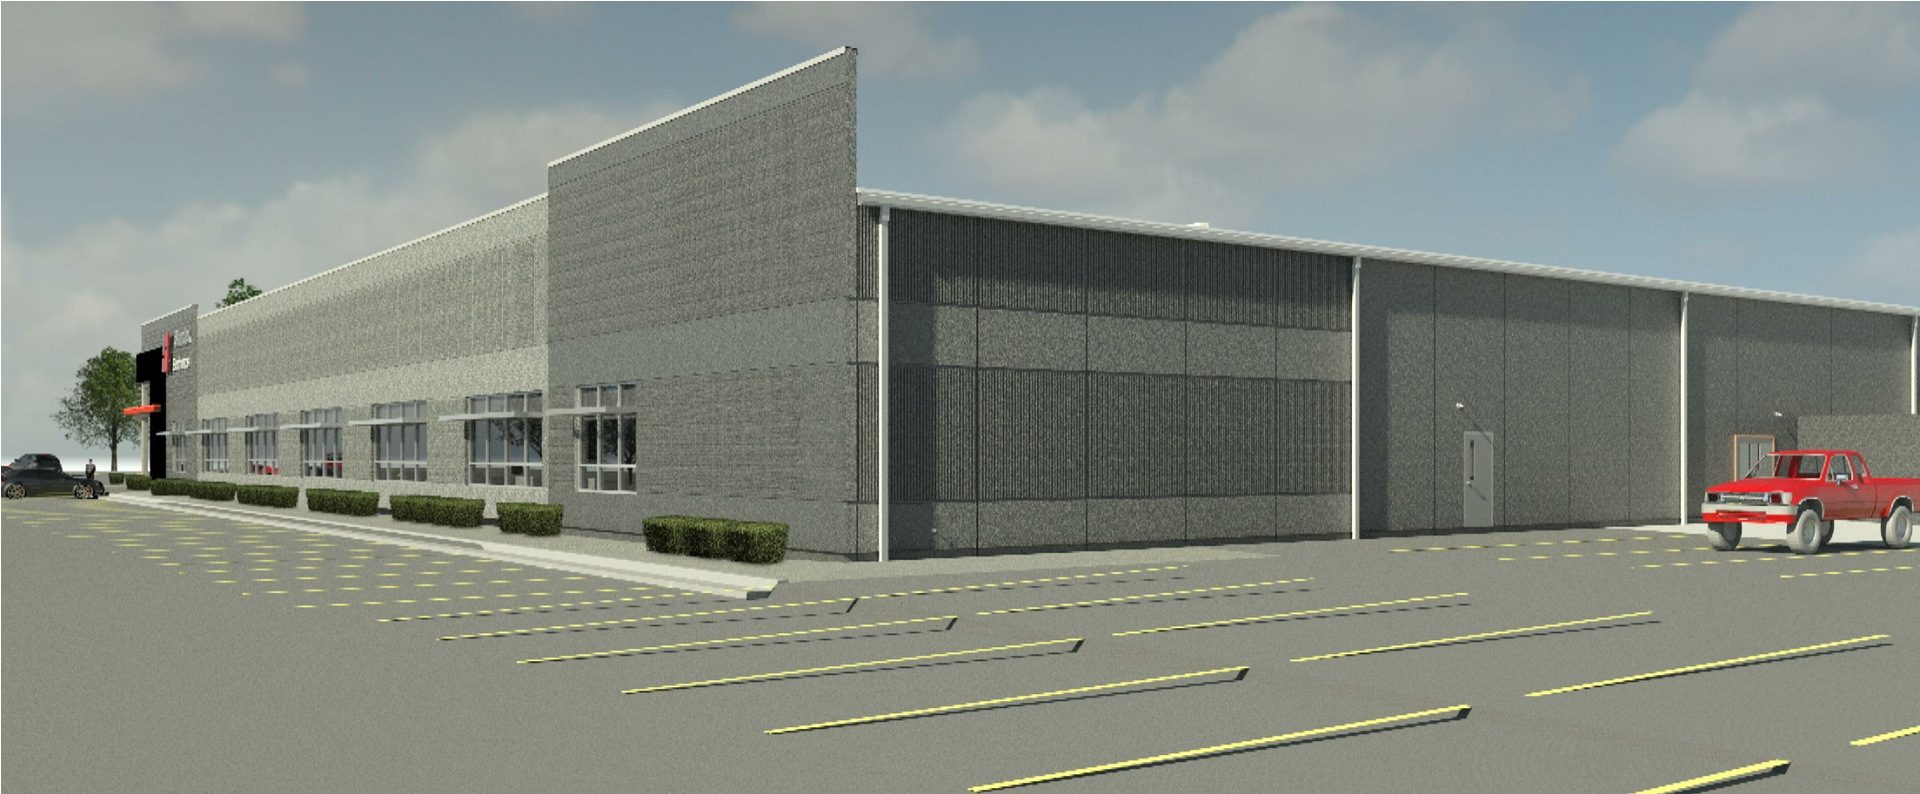 STANDEX-4-Rendering-3D-View-Front-Right_1